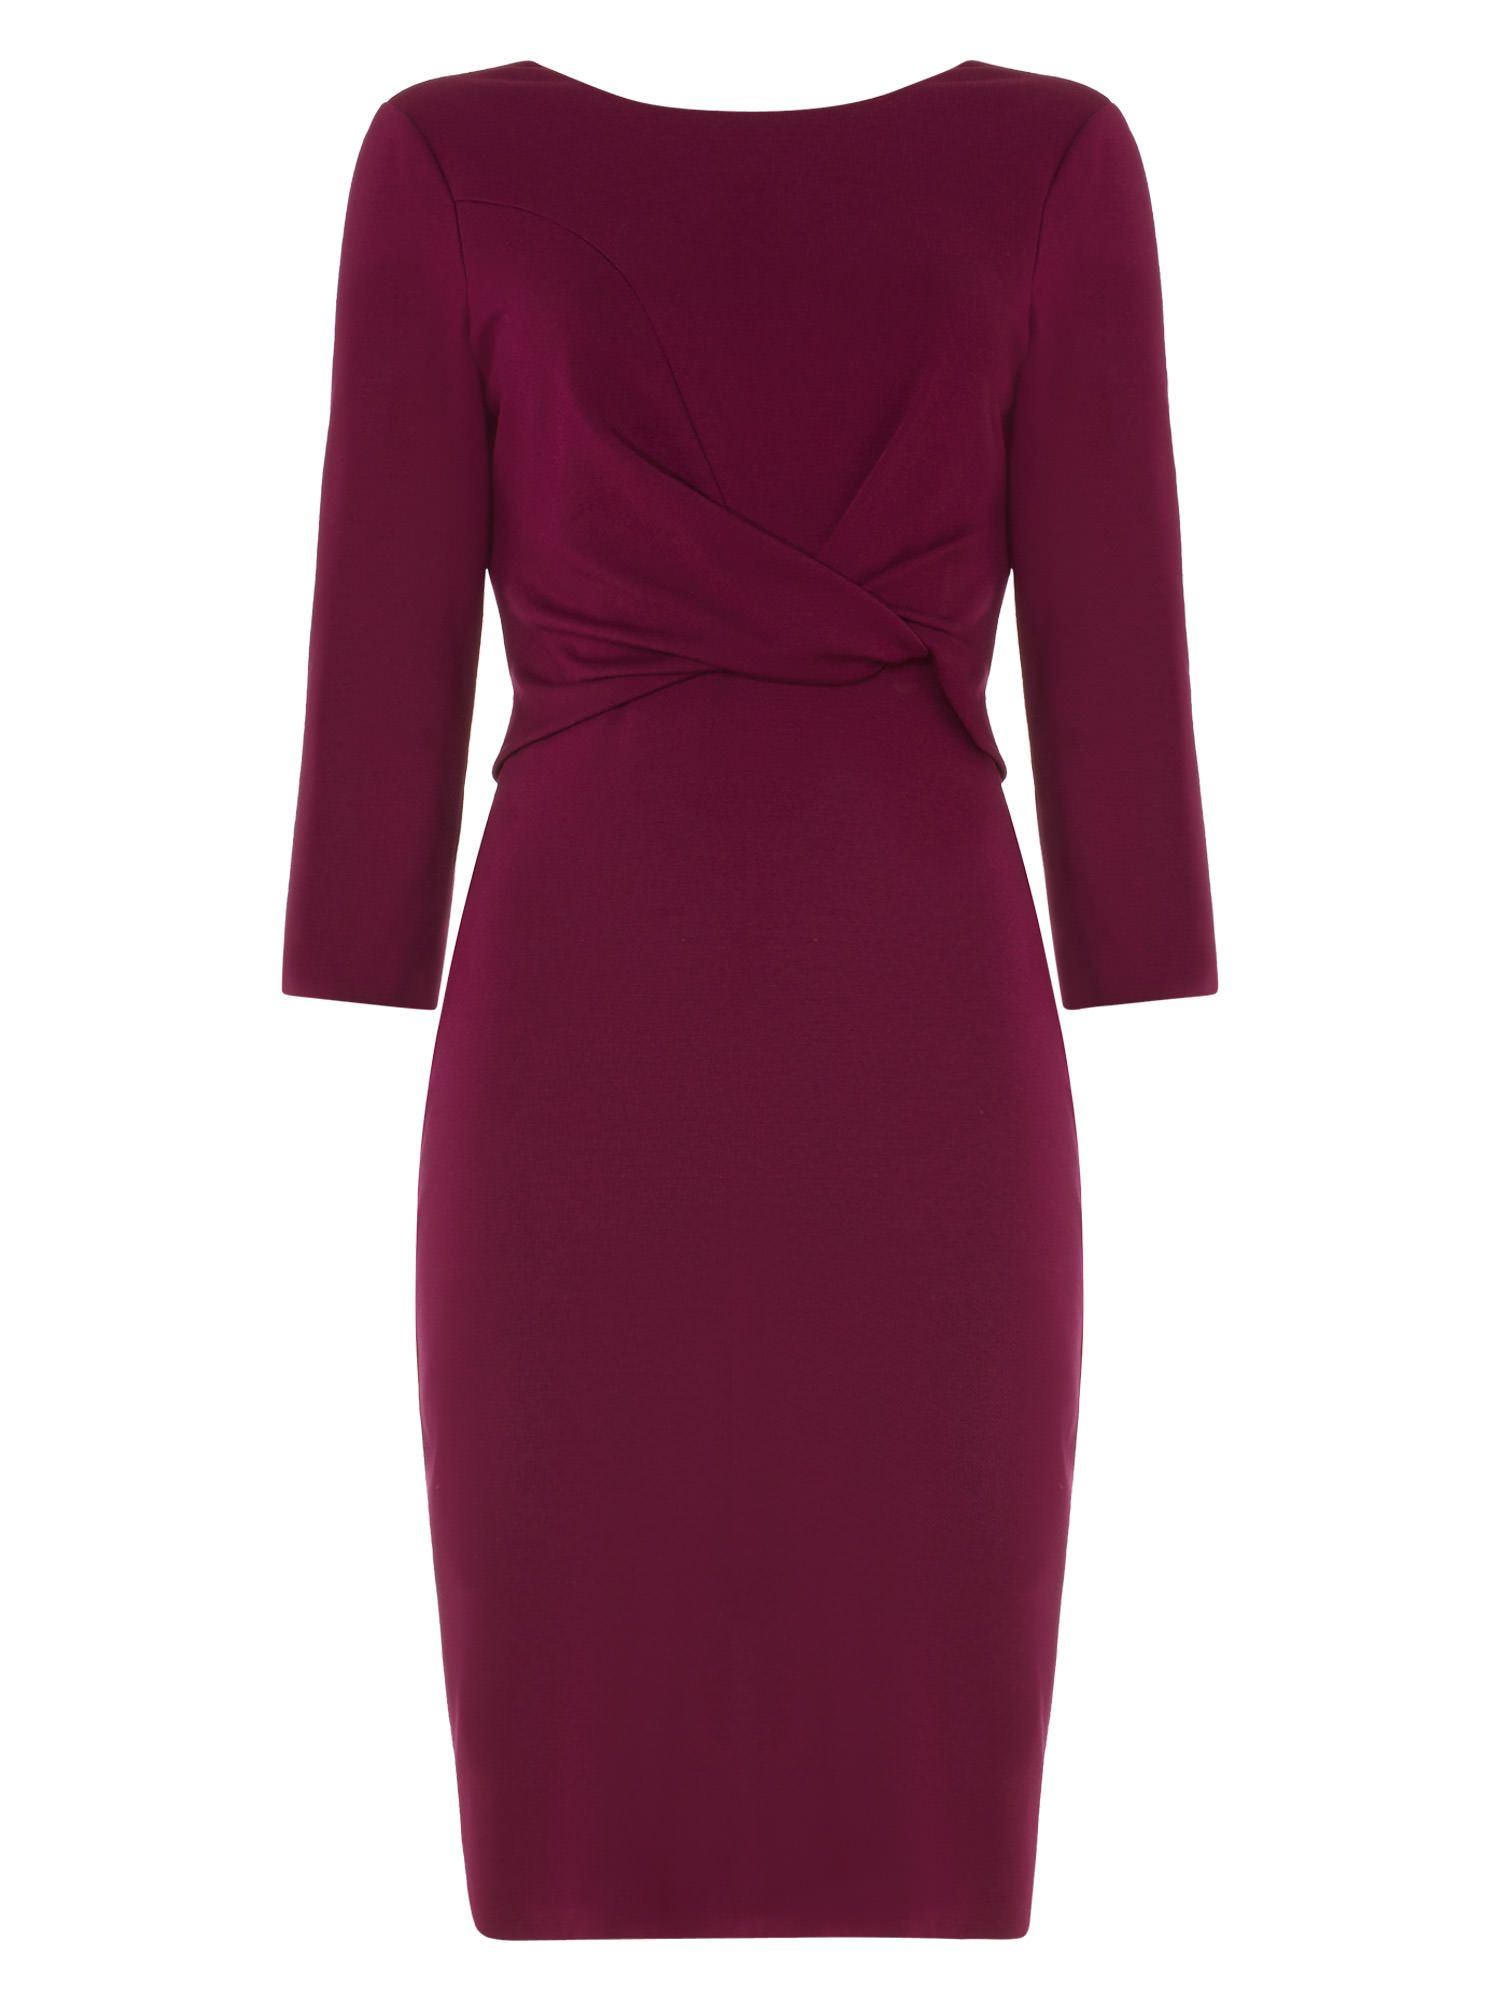 Tayla Twist Front Dress by Phase Eight